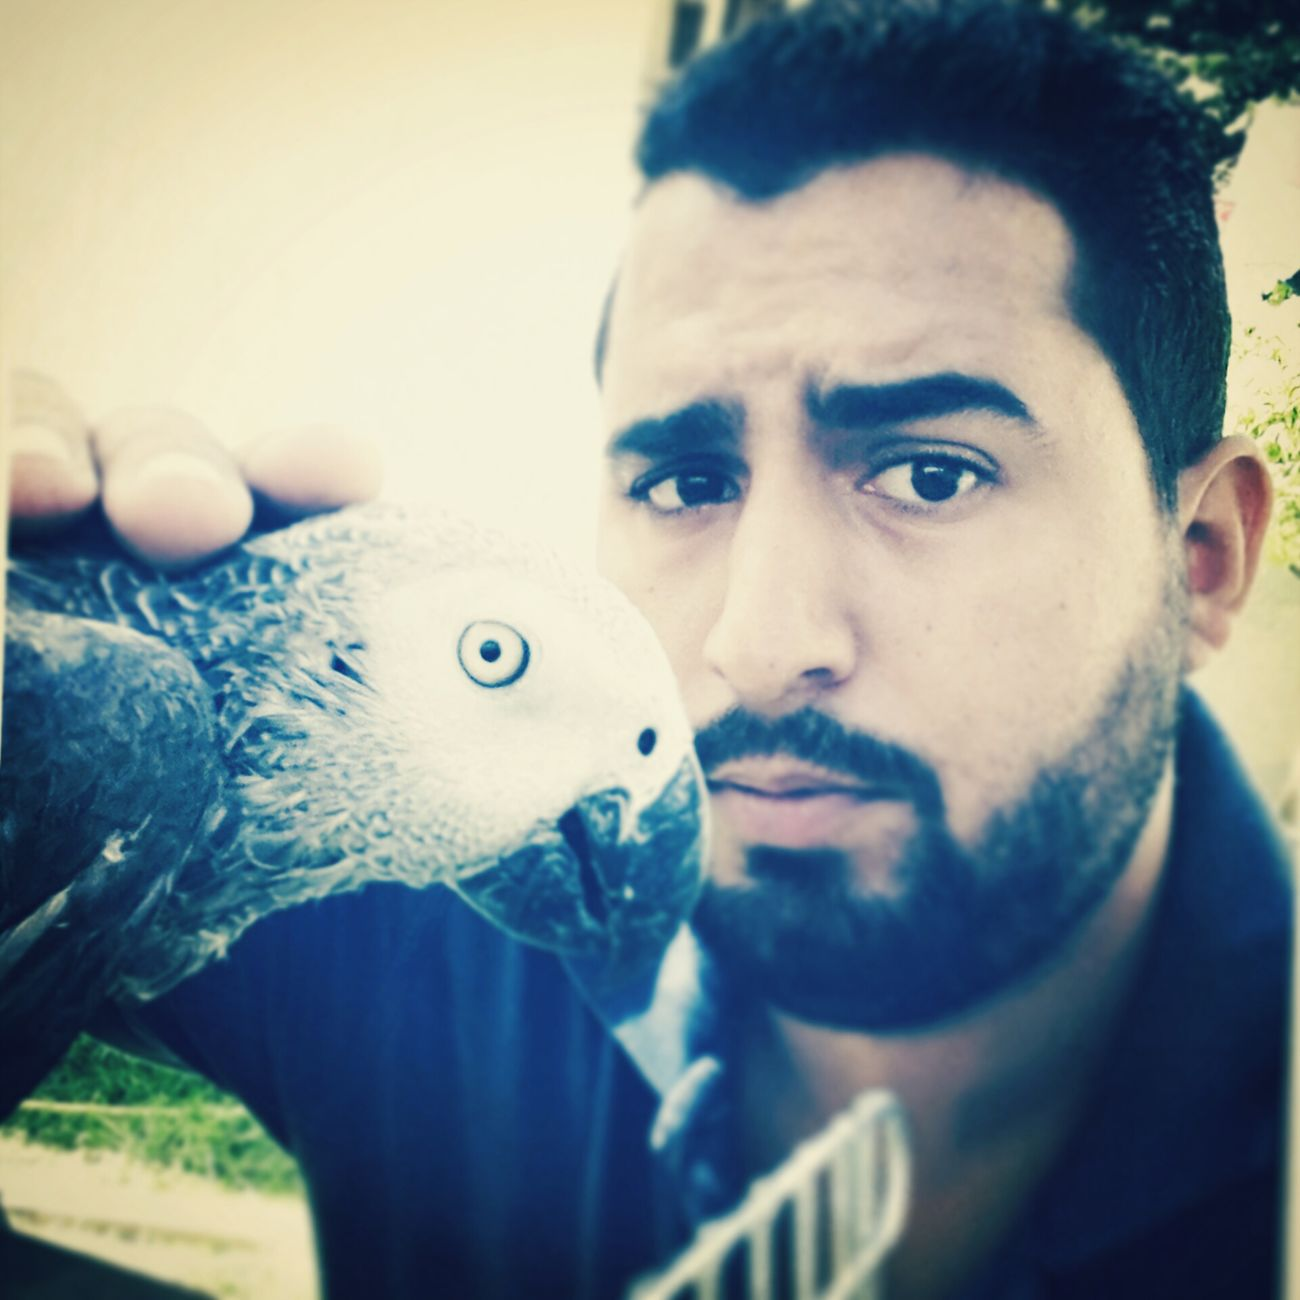 Selfie With My Friend ?? My Parrot Tripoli